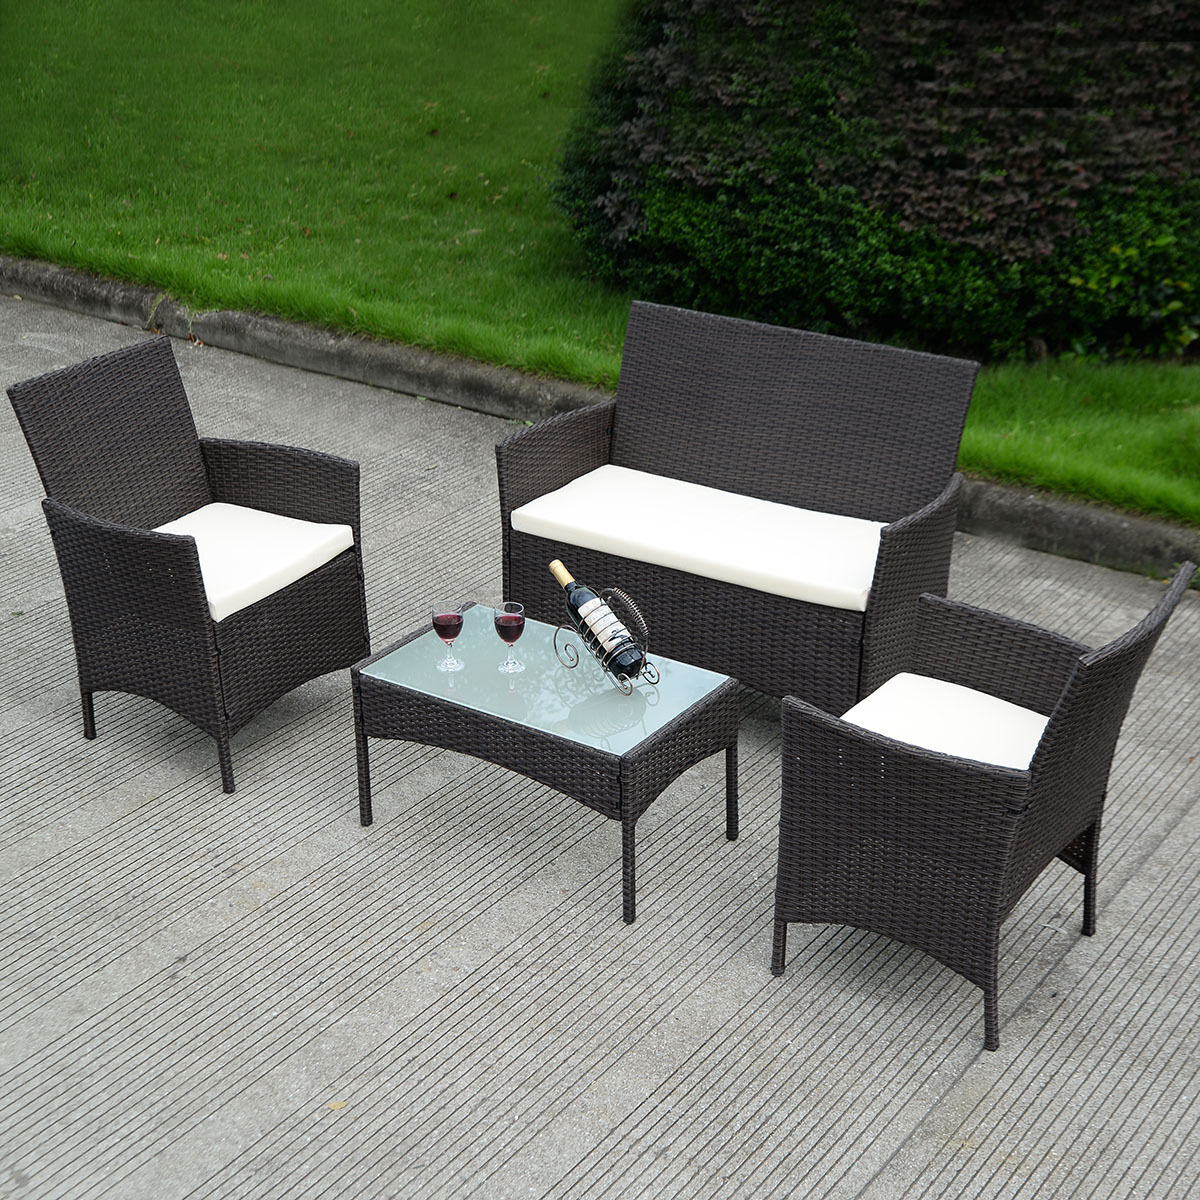 4pcs outdoor patio pe rattan wicker table shelf sofa furniture set with cushion walmartcom